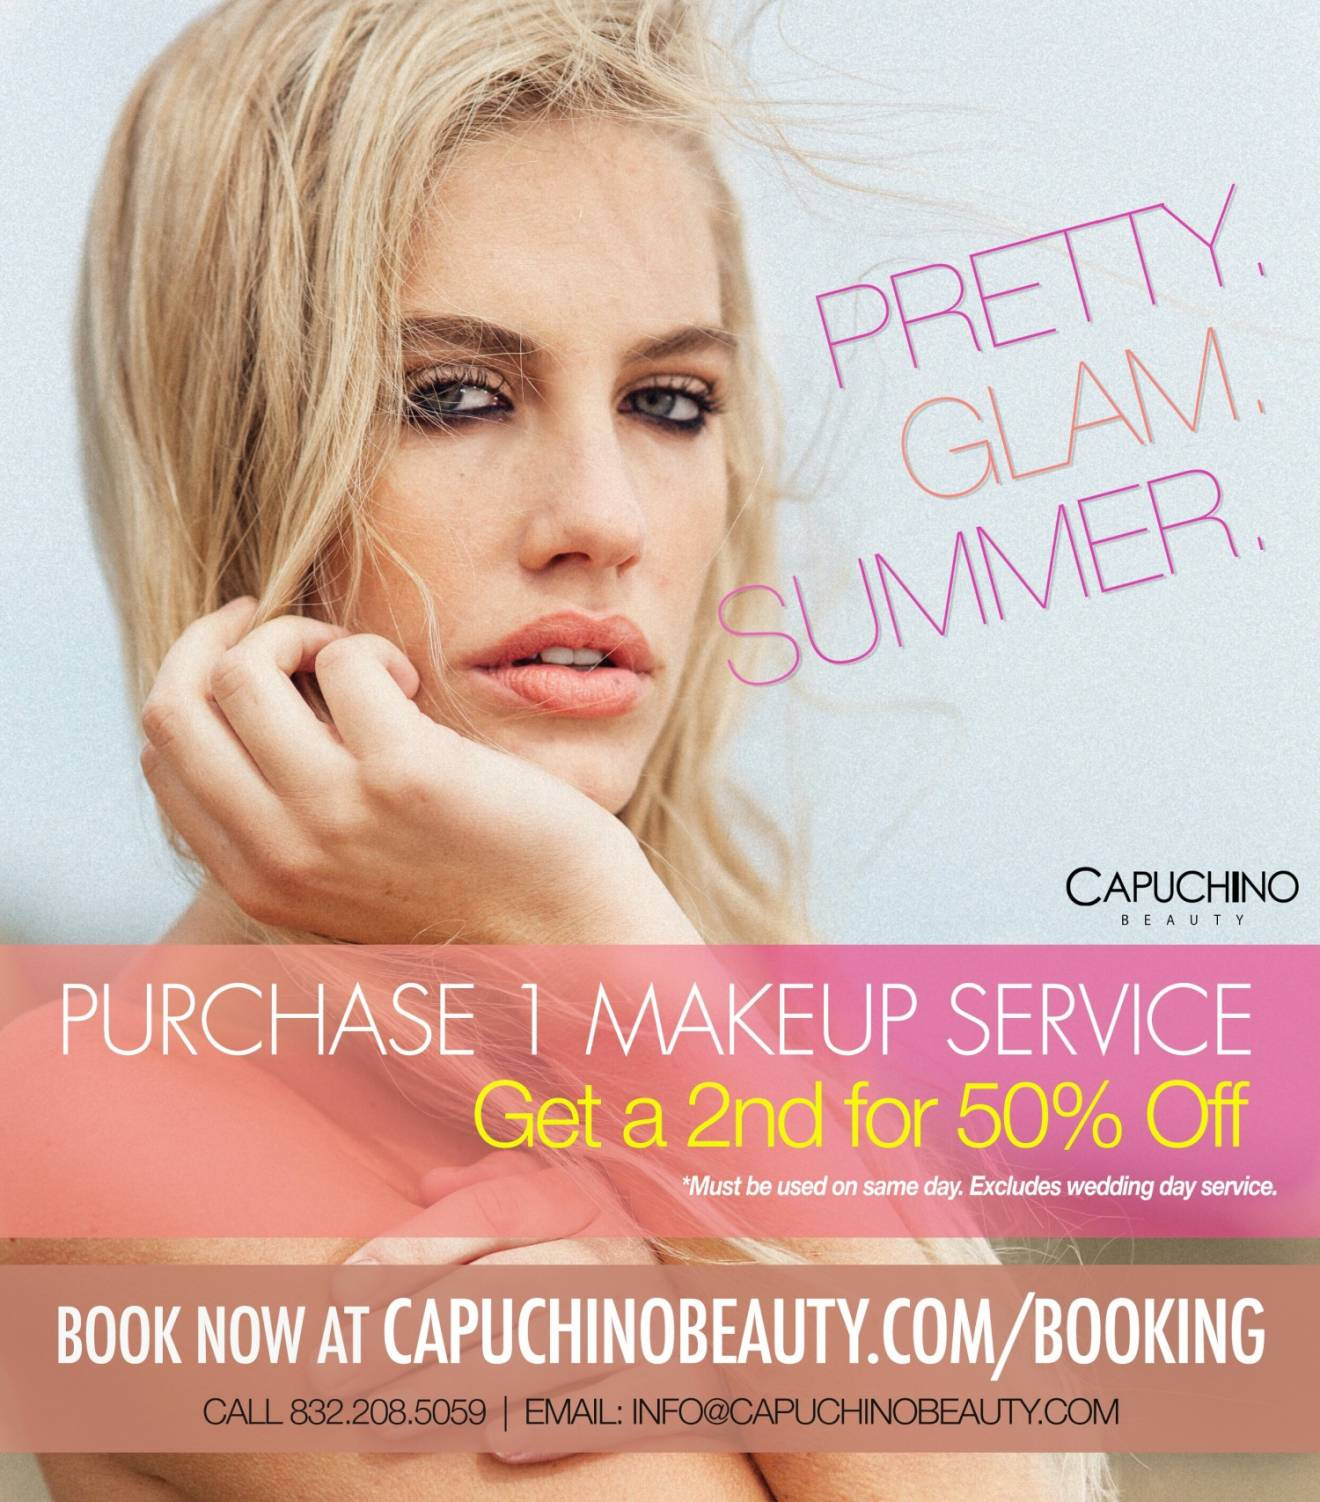 summer-makeup-artist-deal-offer-houston-texas-capuchino-beauty Offers